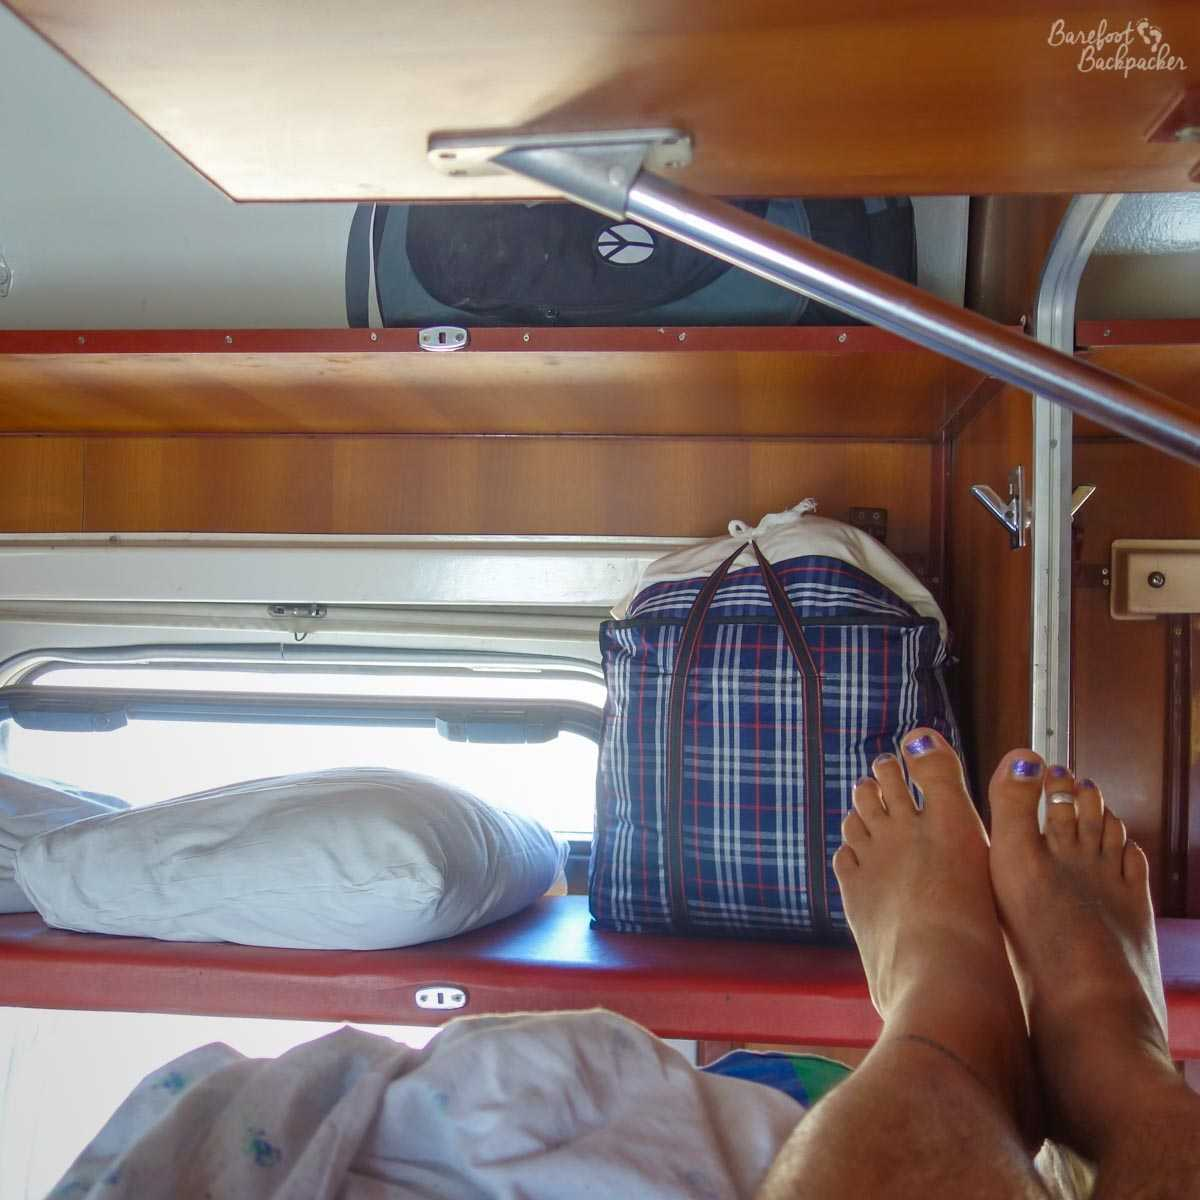 Inside a train in the former Soviet Union; showing the luggage rack and the lack of space on the bunk. Warning, contains bare feet.